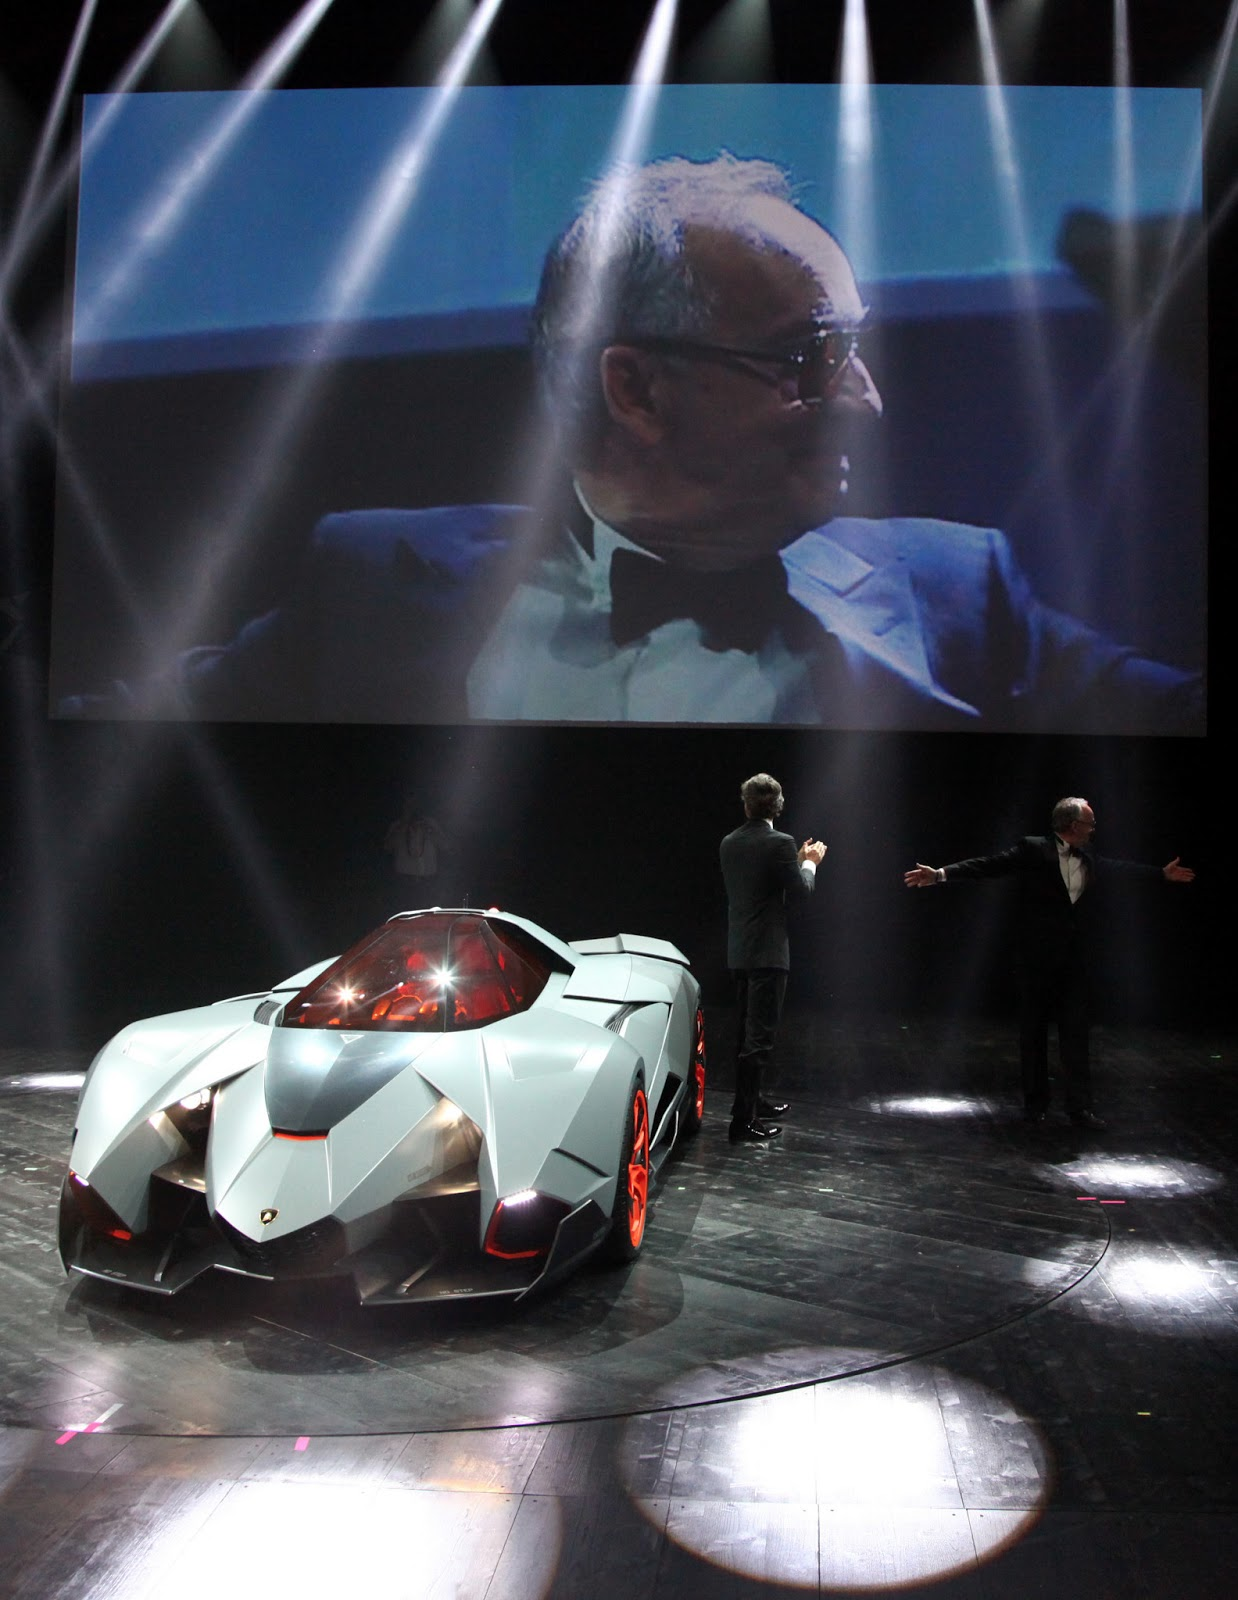 Lamborghini Egoista Single Seat Concept For Their 50th Anniversary